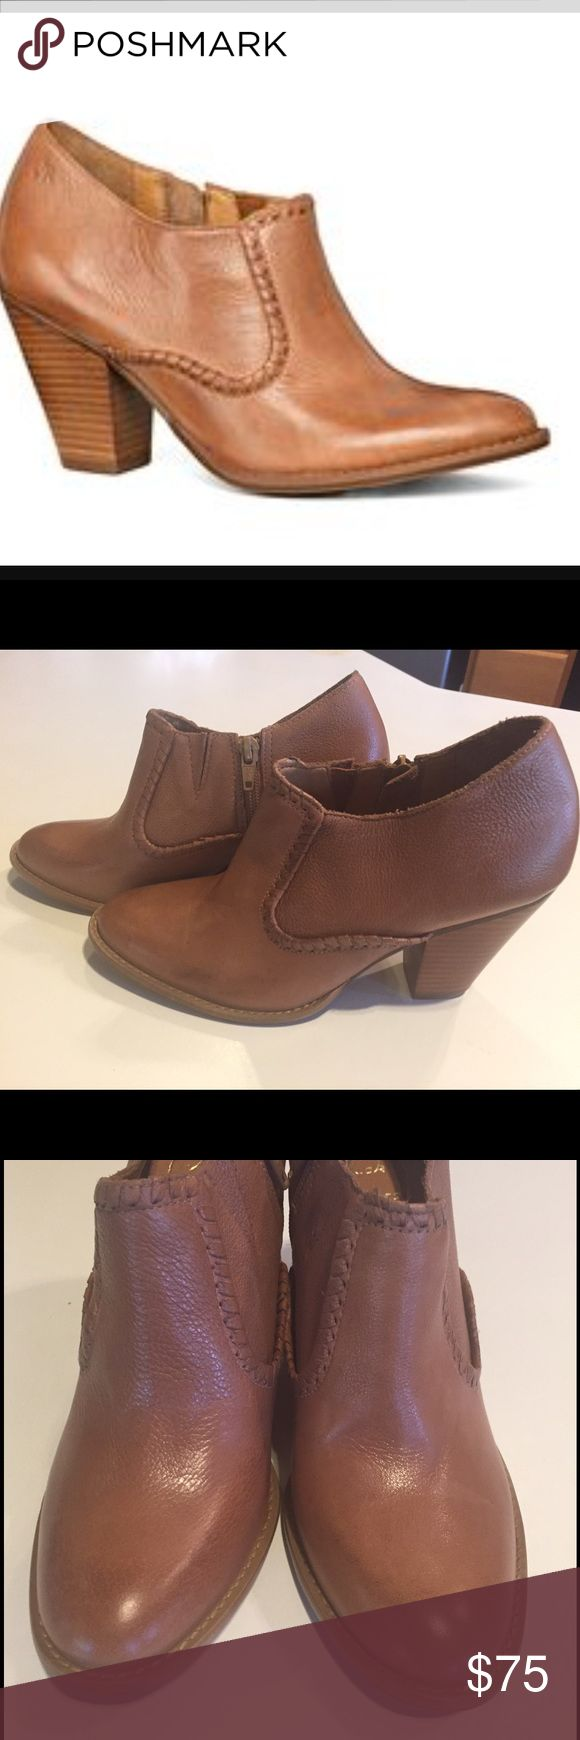 New Jack Rogers Kyle Bootie in Oak Size 6.5 New Jack Rogers Kyle Bootie in Oak Size 6.5. There is one imperfection in the leather on the left side of the left Bootie as shown in first picture. Jack Rogers Shoes Ankle Boots & Booties